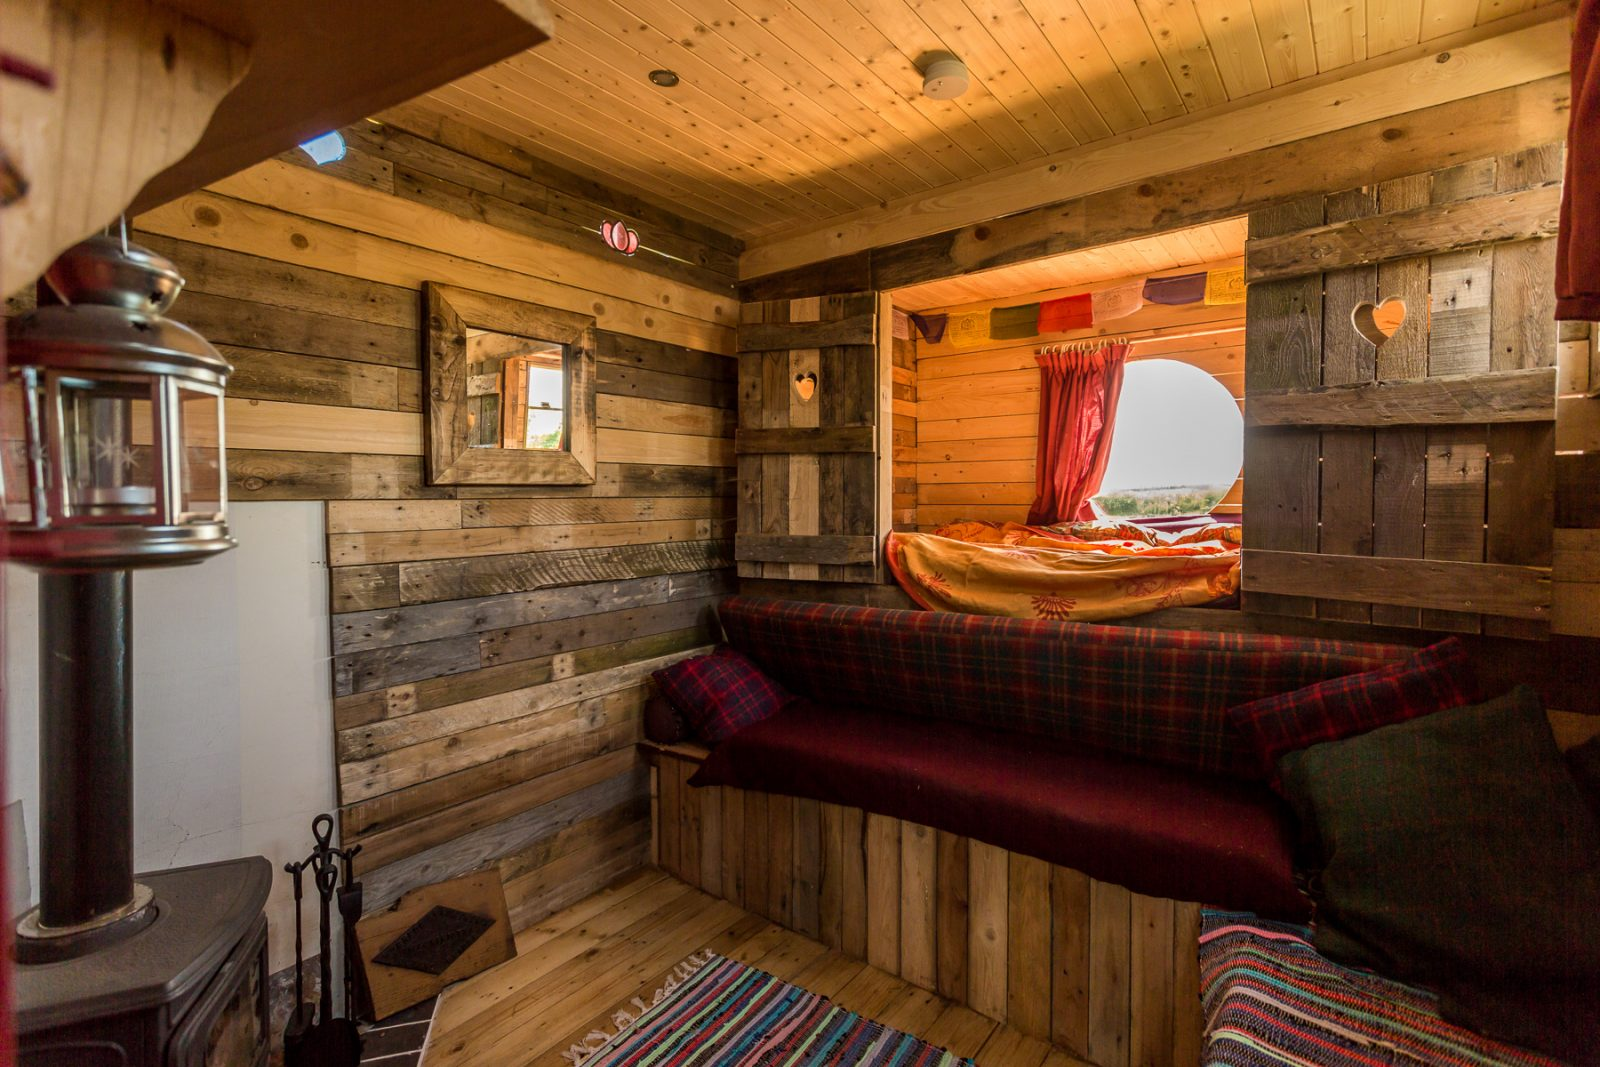 The off-grid horse box is one of the most unusual places to stay in Northern Ireland